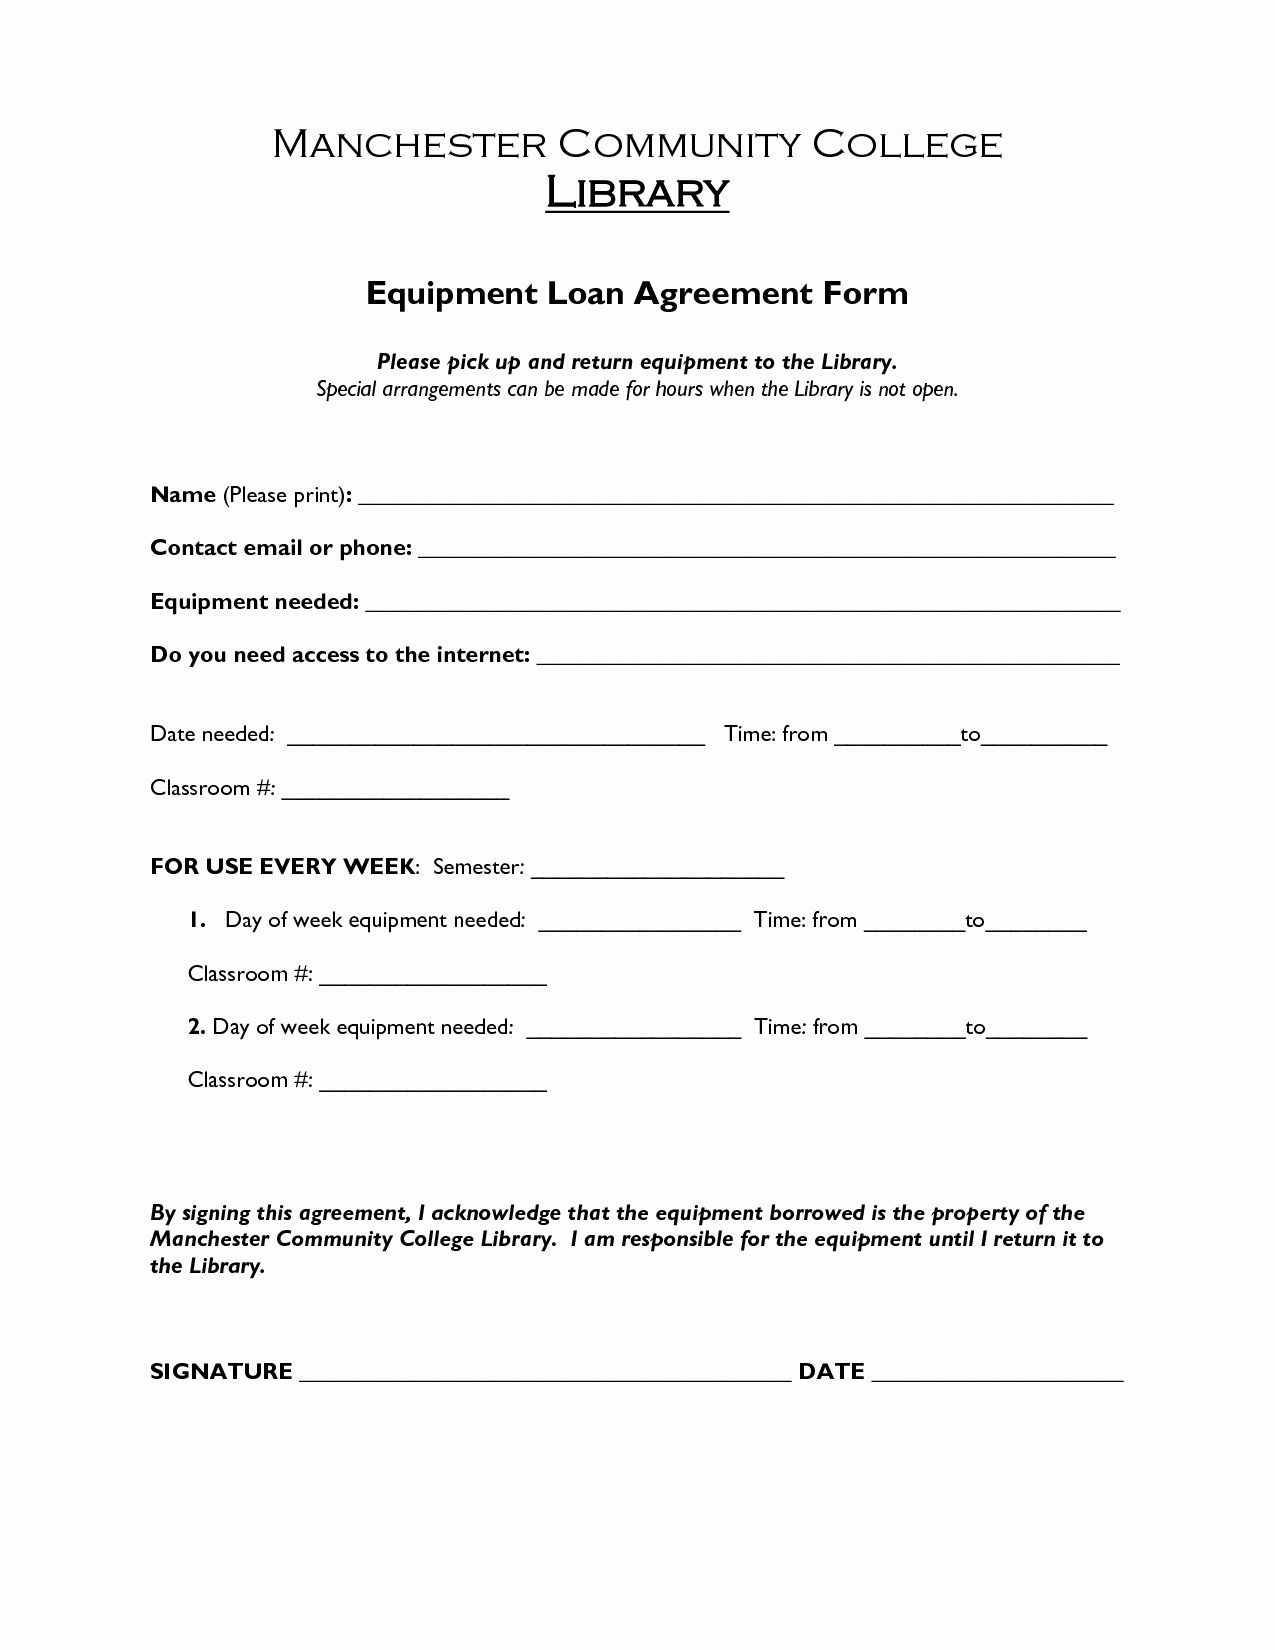 Company Equipment Use And Return Policy Agreement Elegant Printable Sample Loan Agreement Form Form Contract Template Words Free Basic Templates